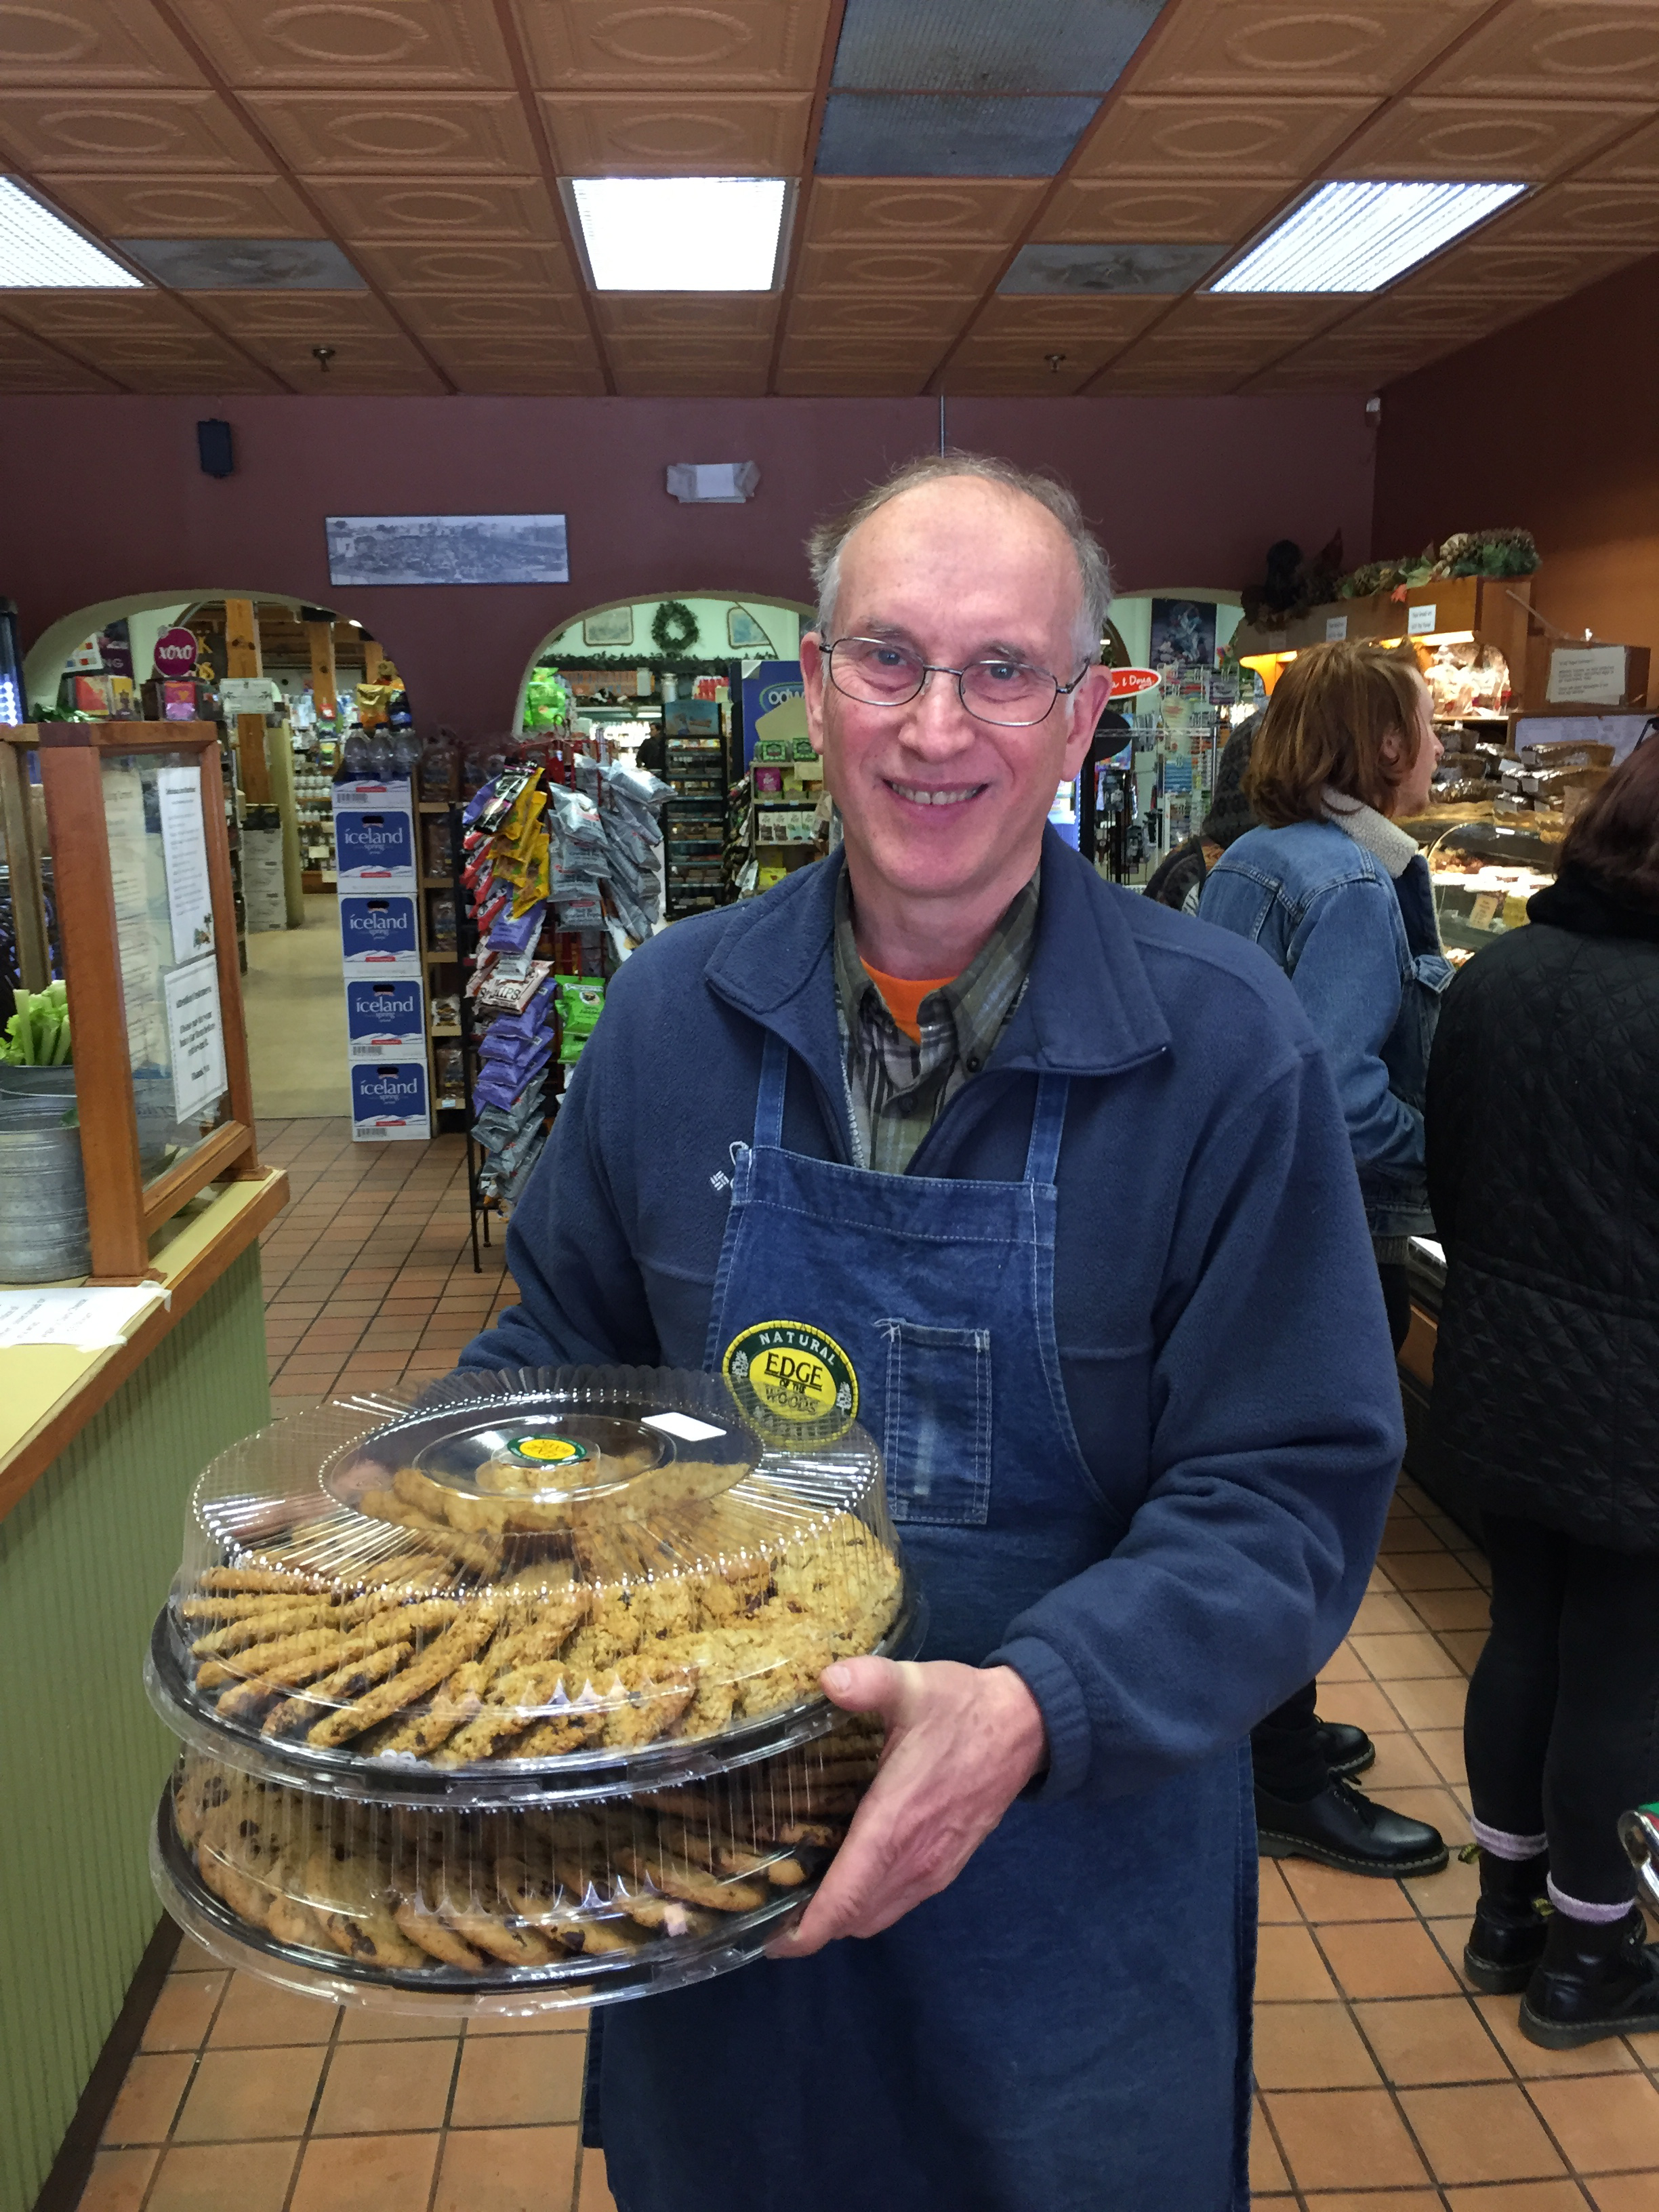 Above, Peter Dodge, donating some delicious Edge of the Woods cookies!  Photo Credit: Kathleen Cei